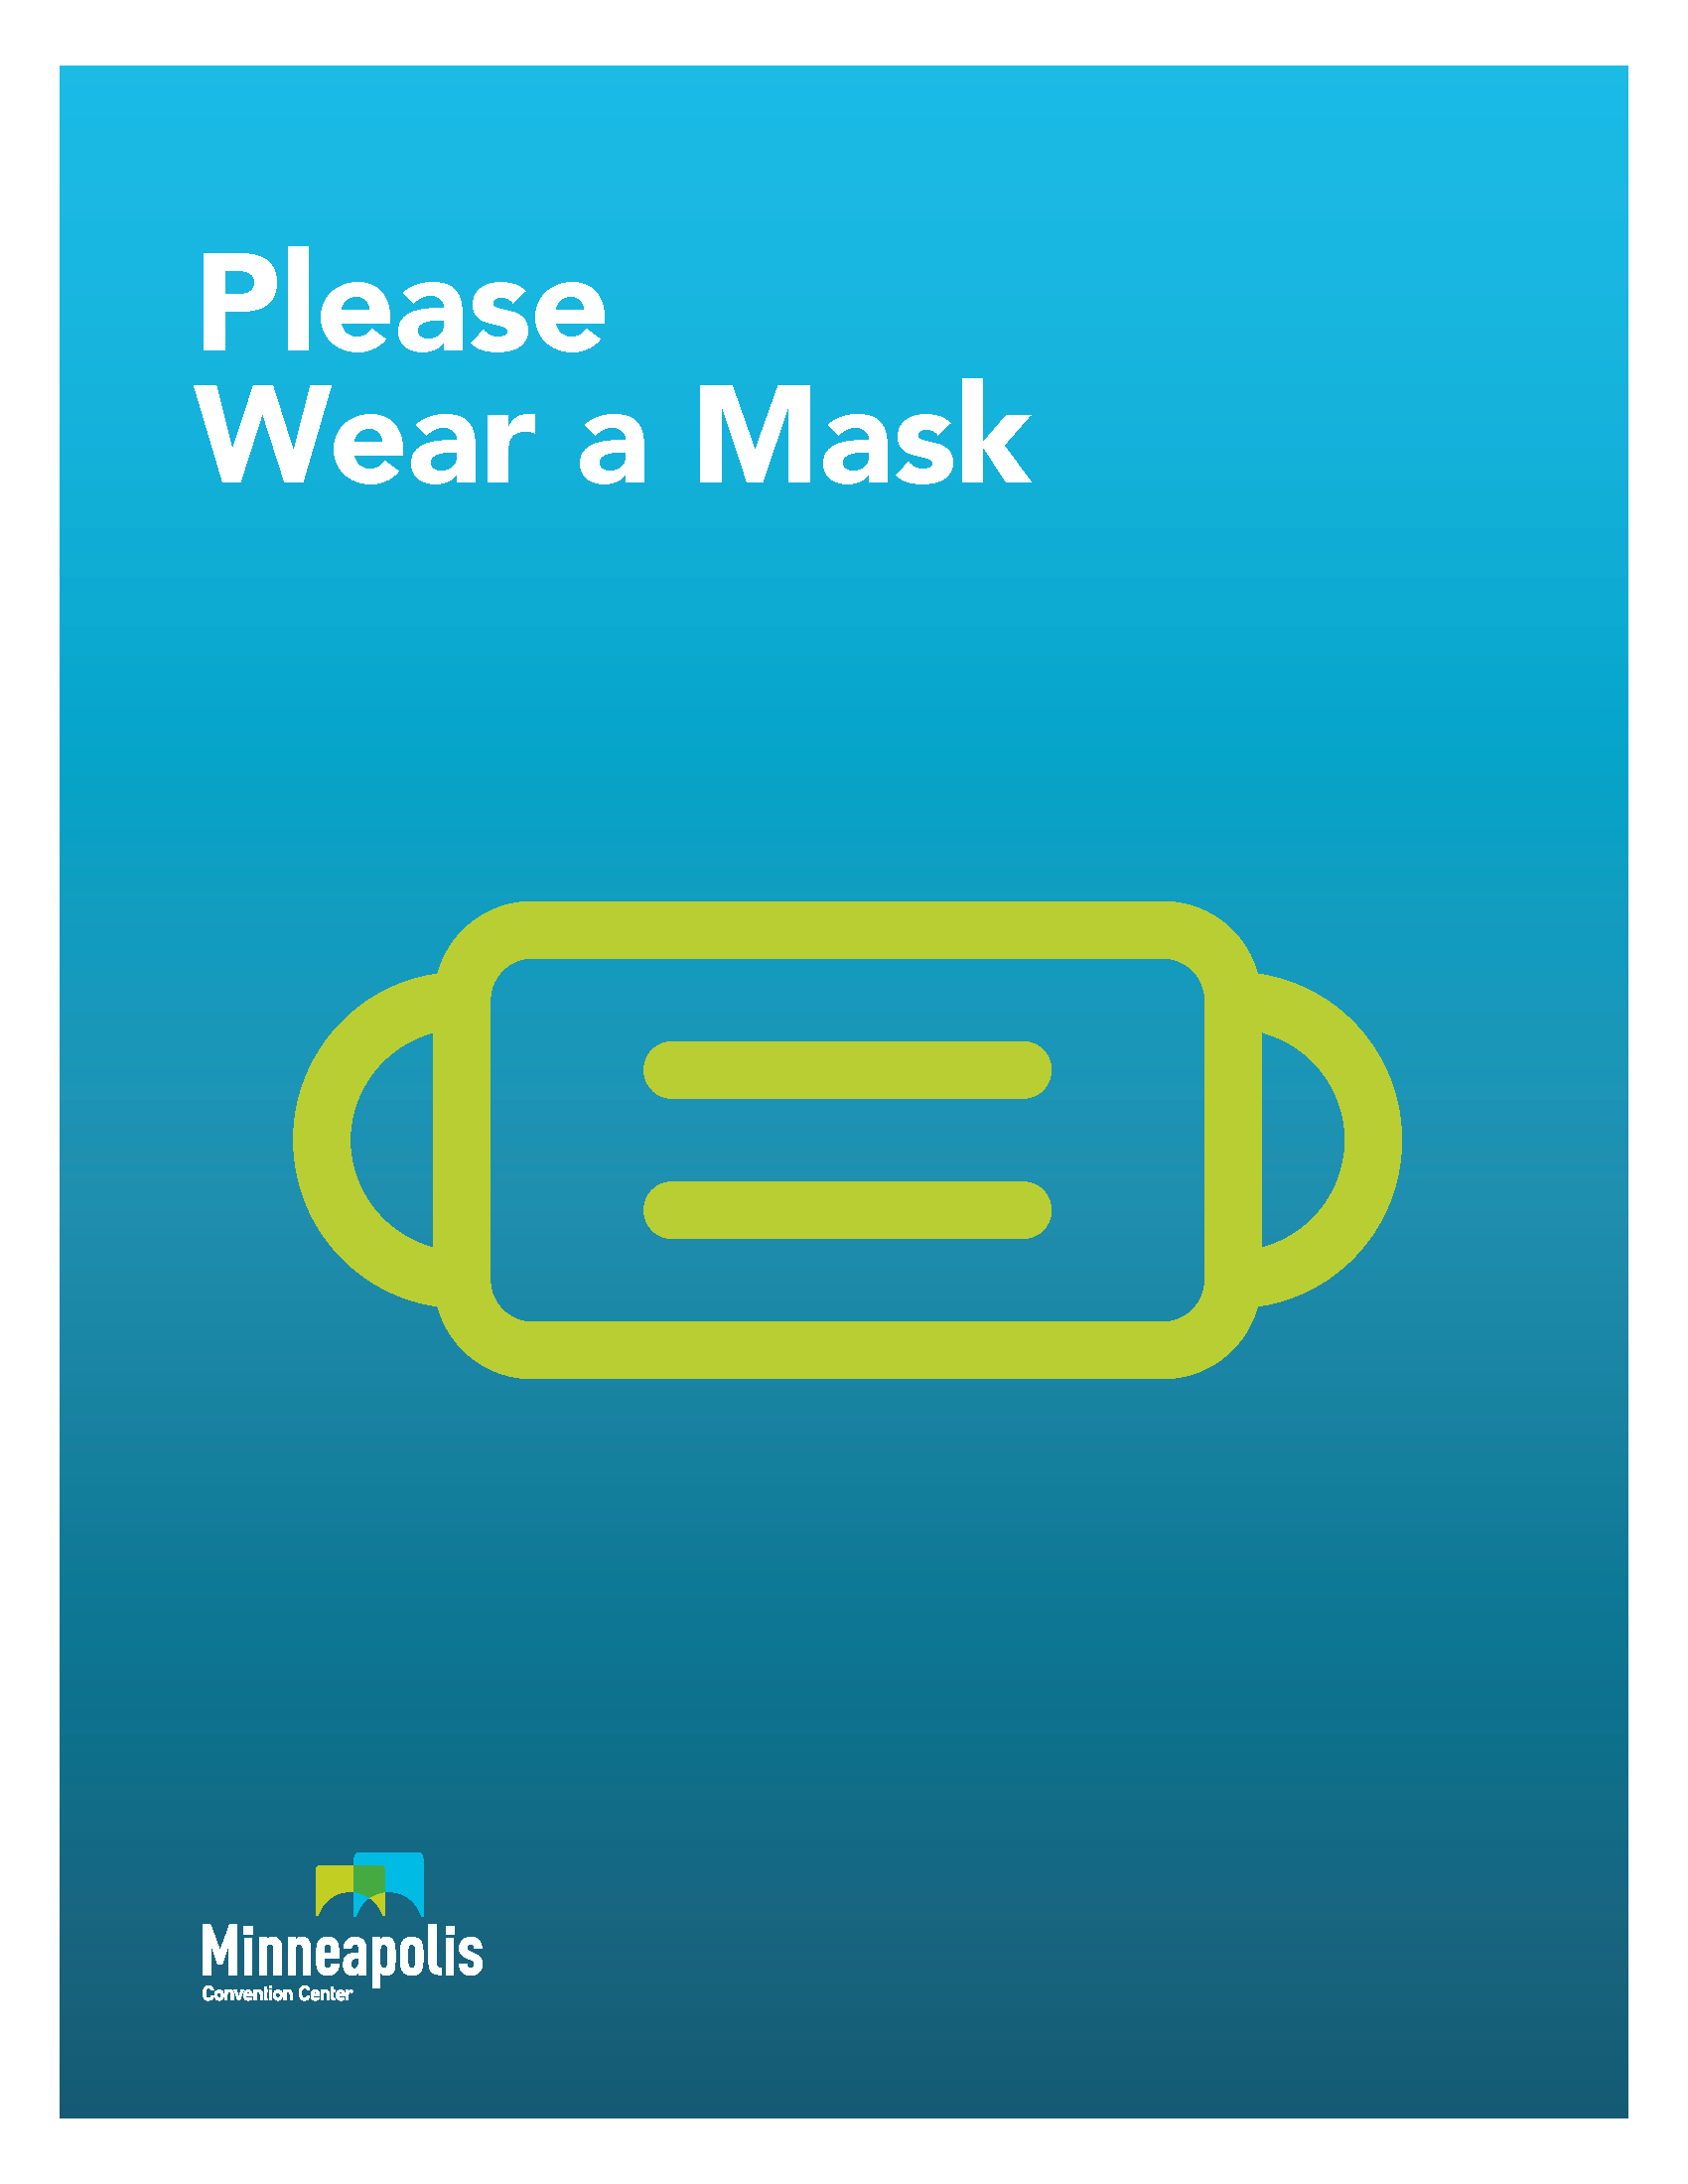 Safety-Reminder-Wear-Your-Mask.png?mtime=20200817134412#asset:7604533